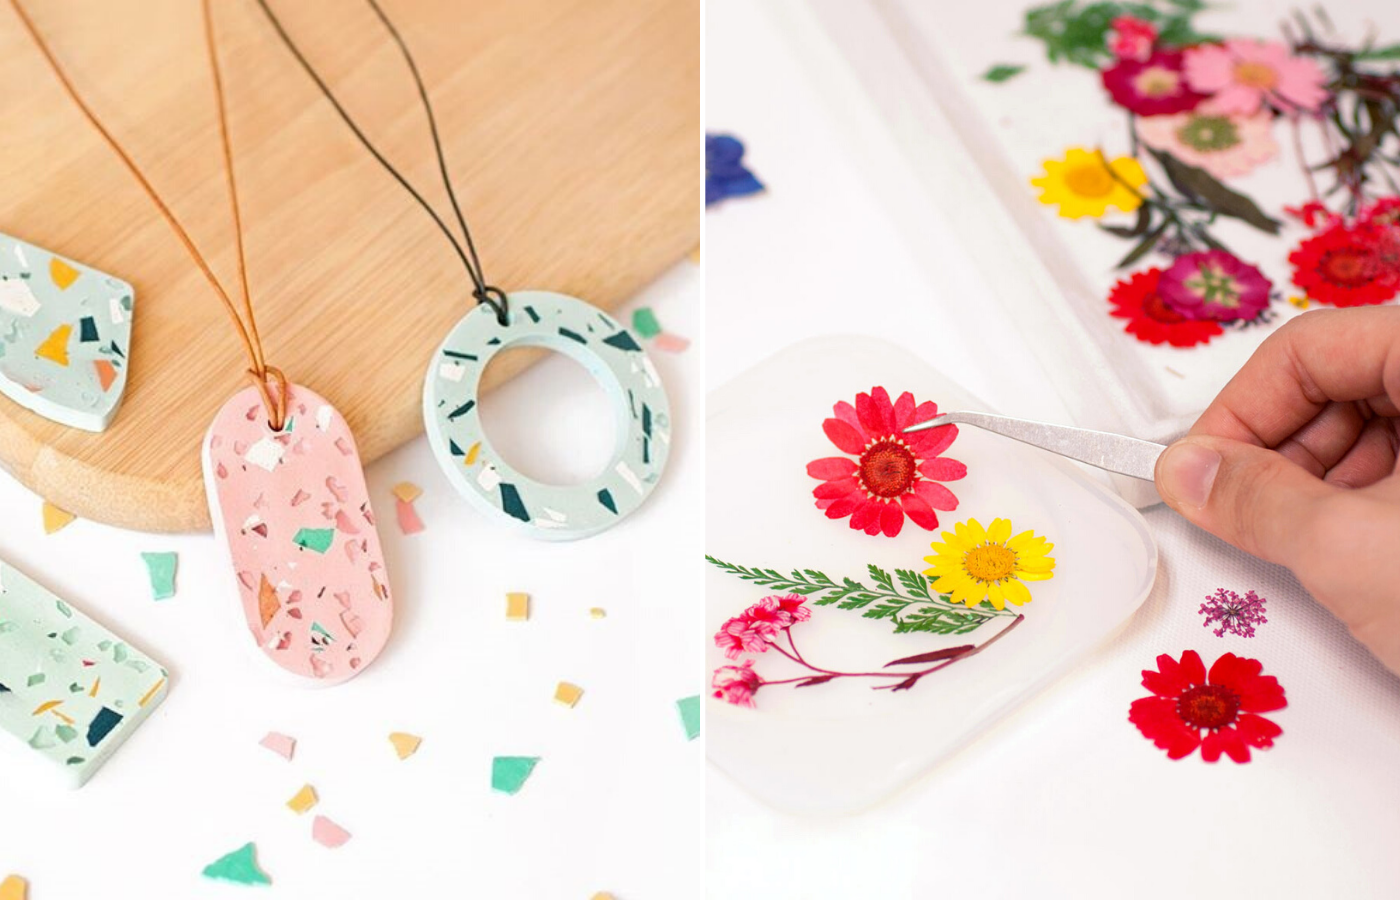 resin play diy craft kits